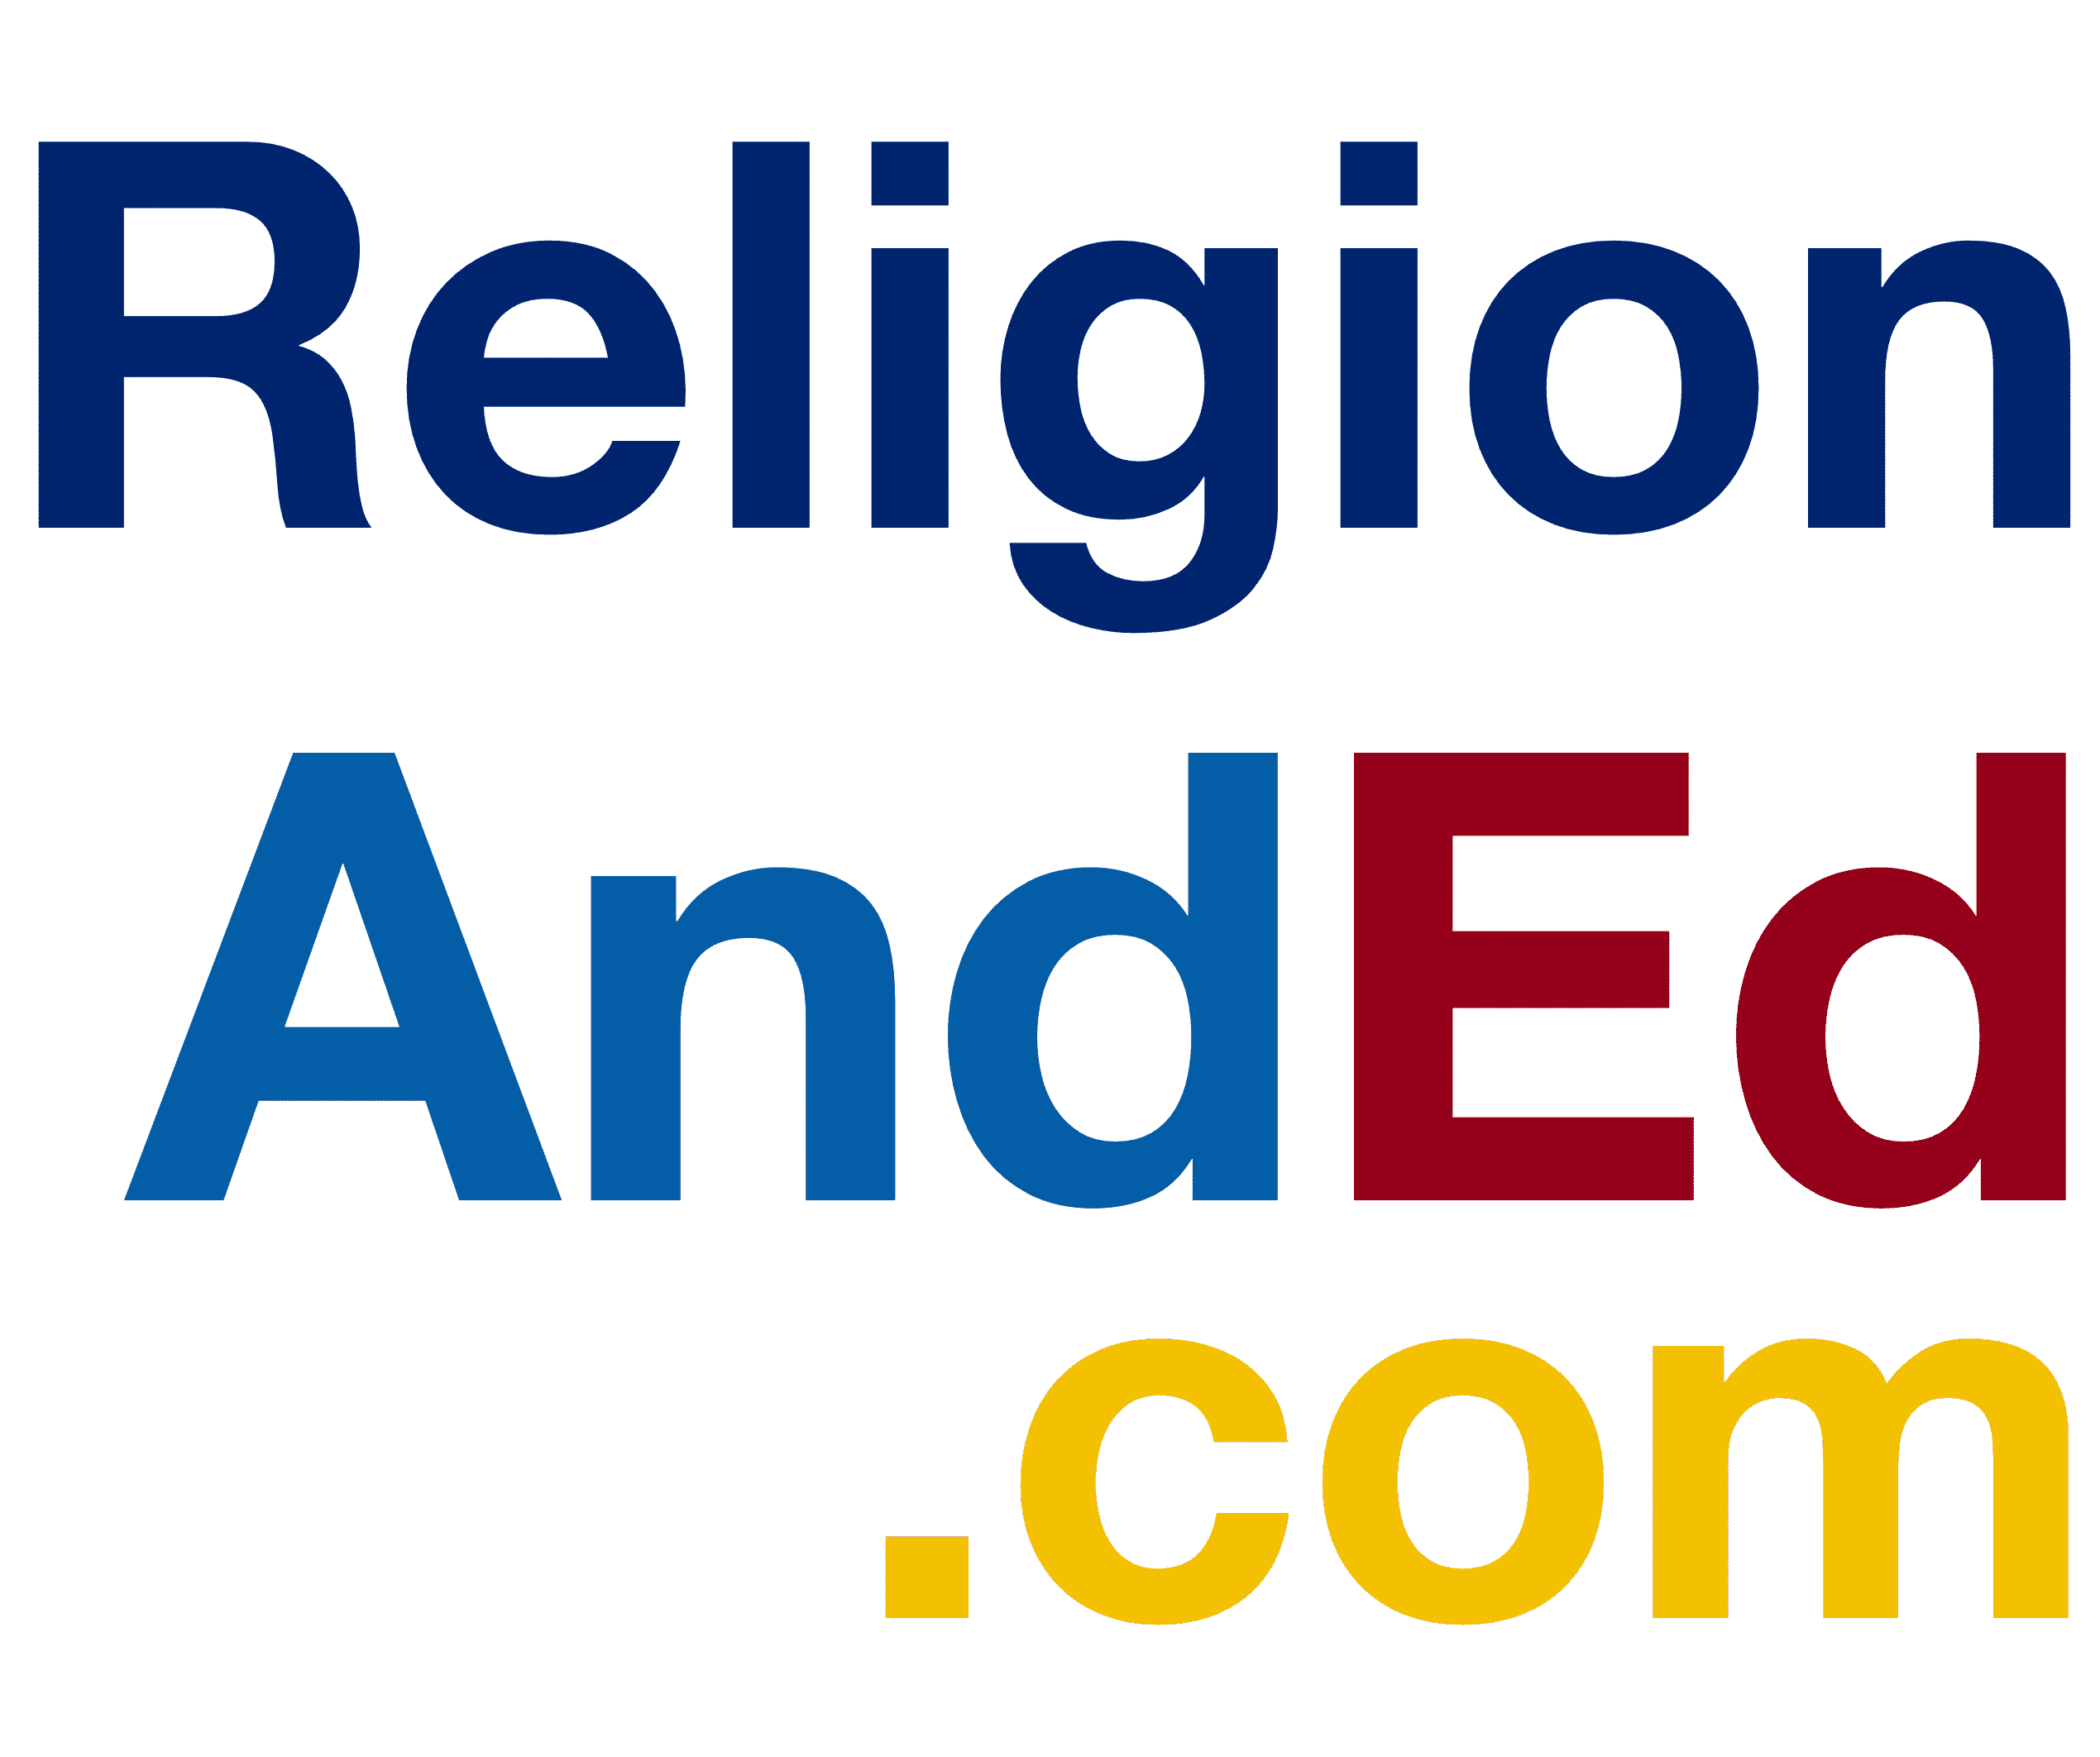 ReligionAndEd logo clear